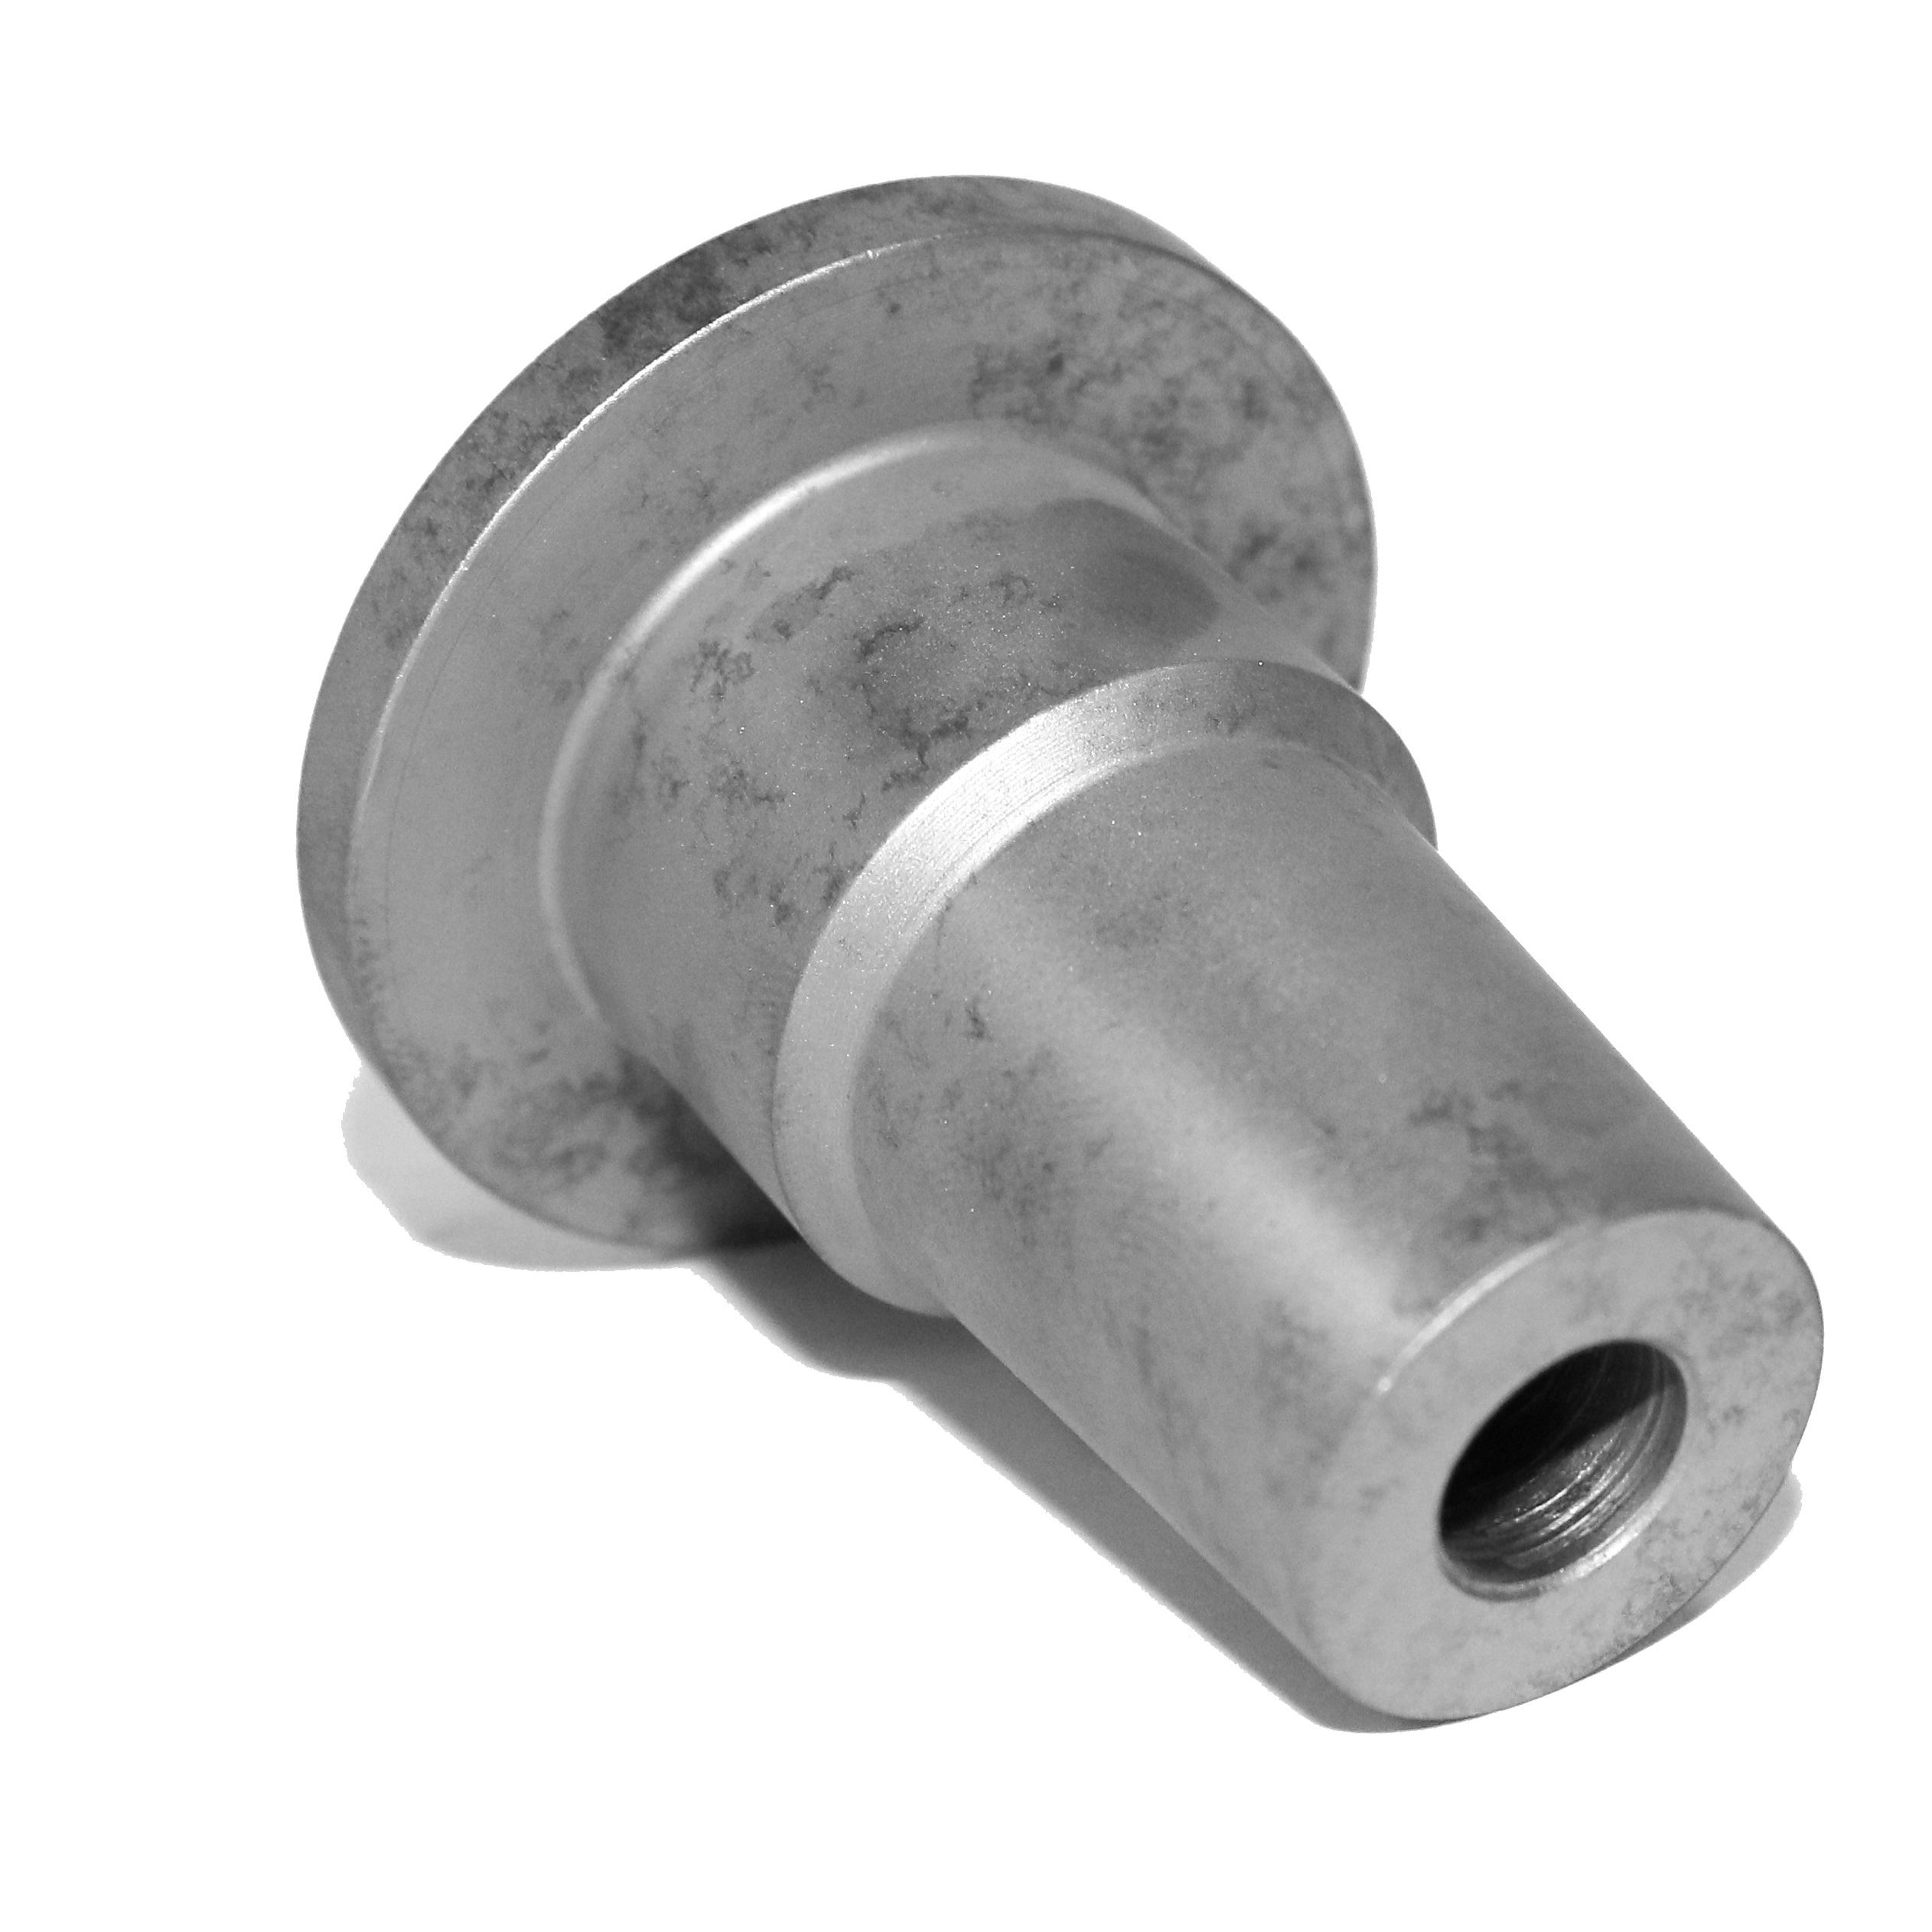 Hardened Inlet Jet Nozzle for DB150  -  134354/002